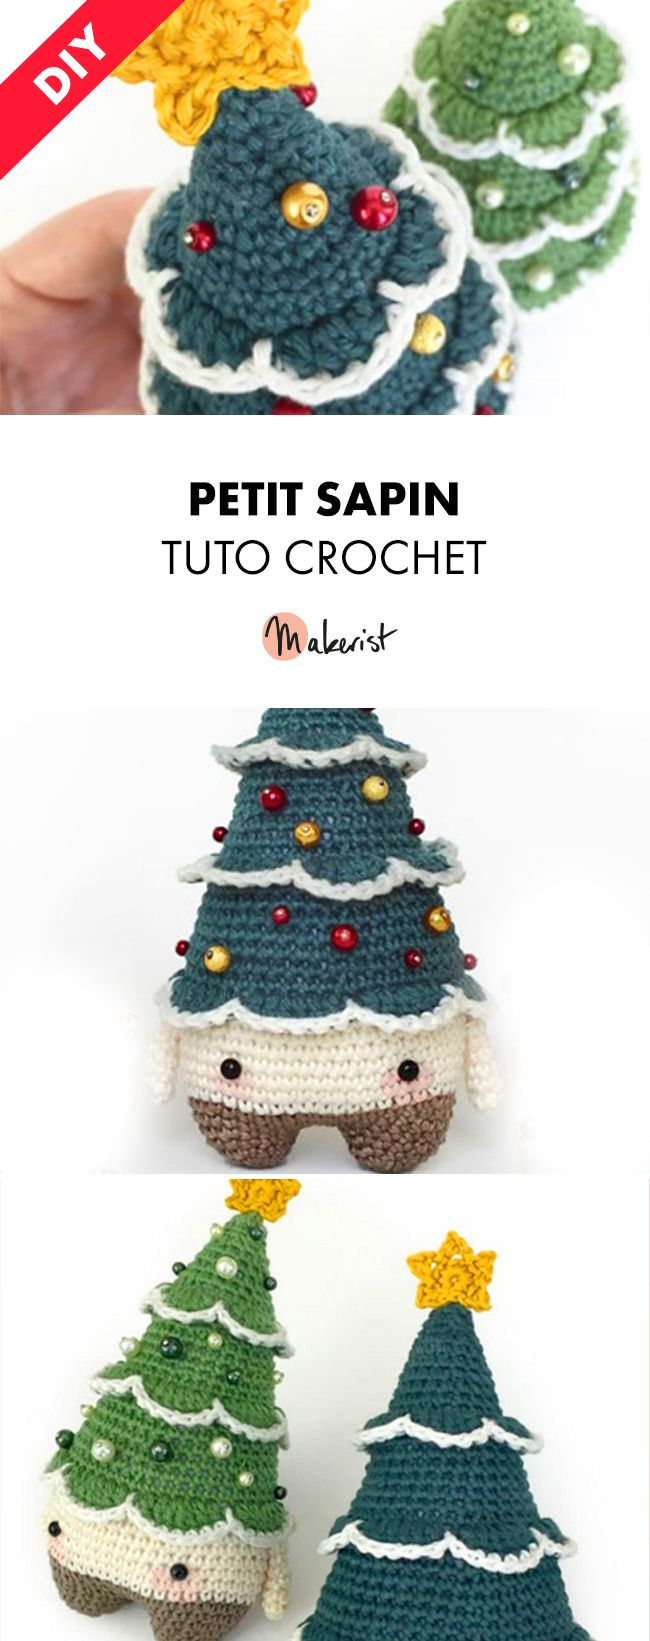 tuto crochet petit sapin de no l crocheter via. Black Bedroom Furniture Sets. Home Design Ideas